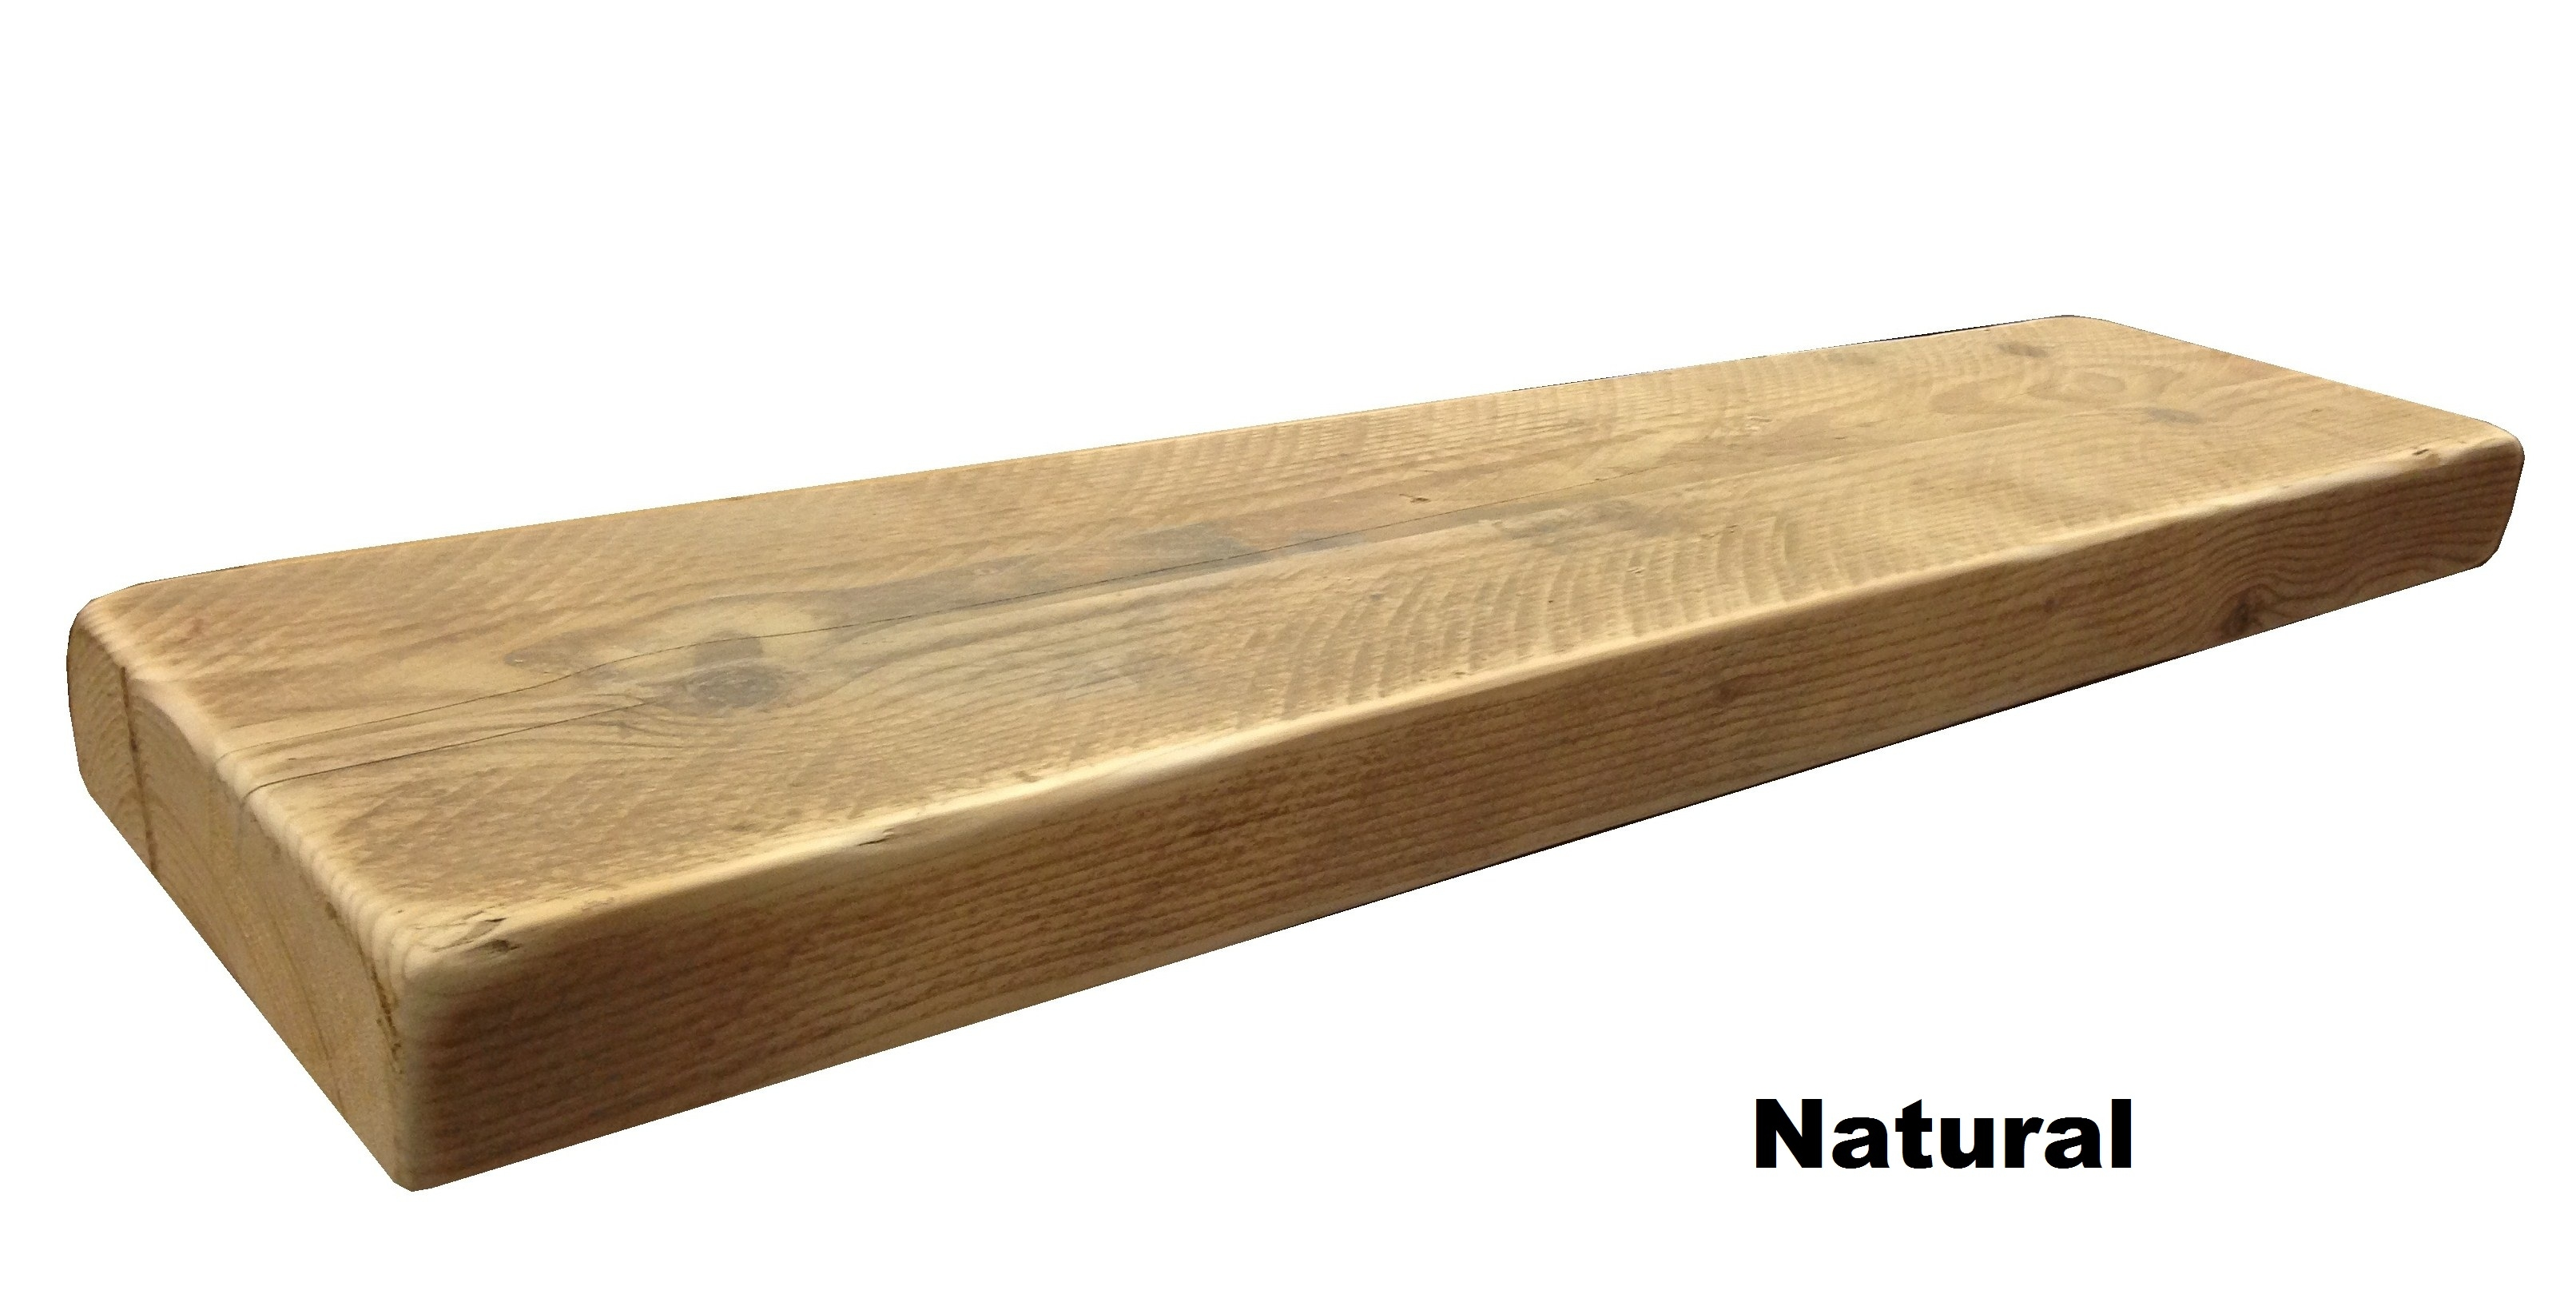 Rustic Floating Wooden Shelf Solid Reclaimed Chunky Wood Regarding 50cm Floating Shelf (View 12 of 15)